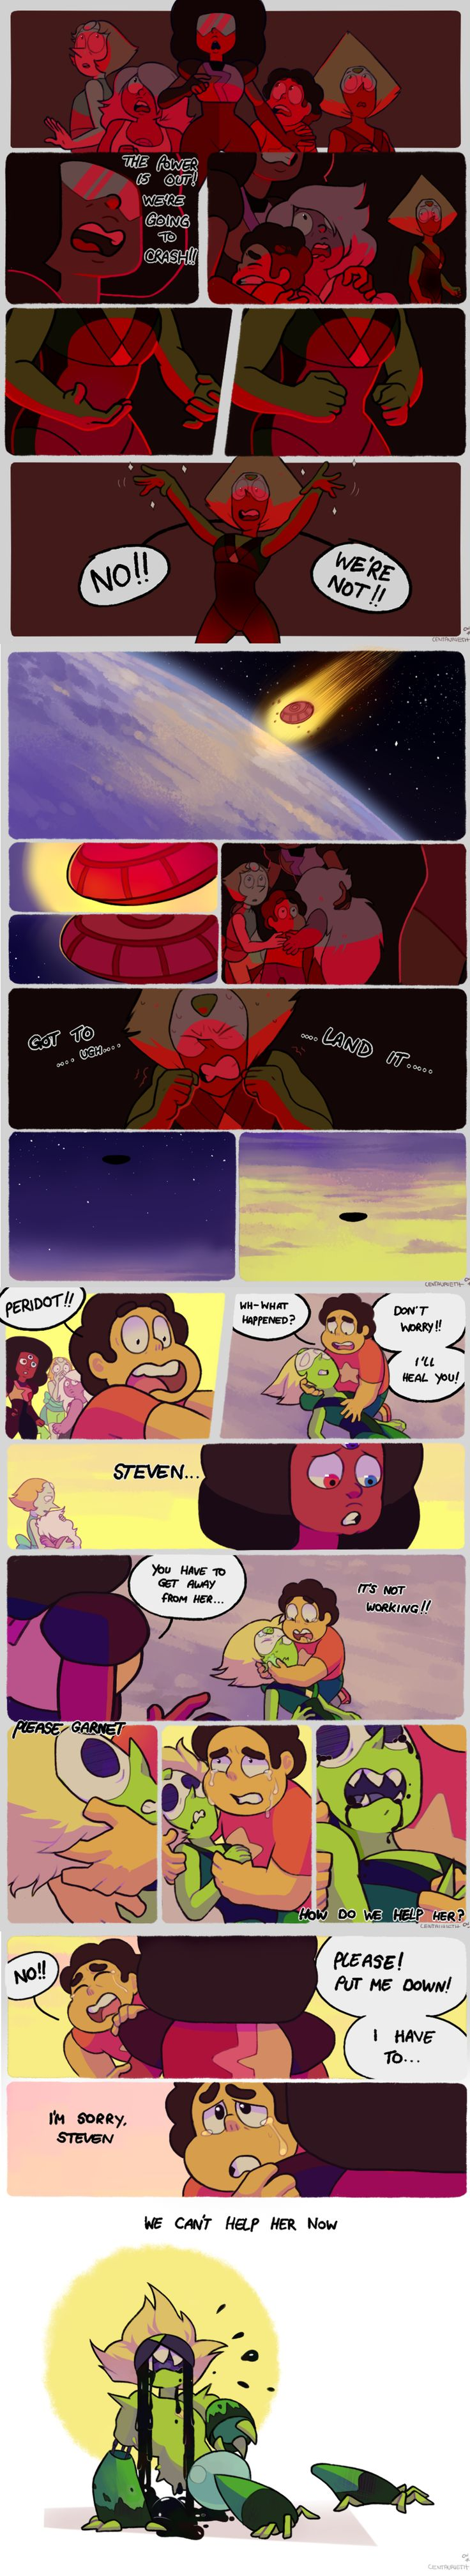 I swear to god Rebecca Sugar, this better not happen